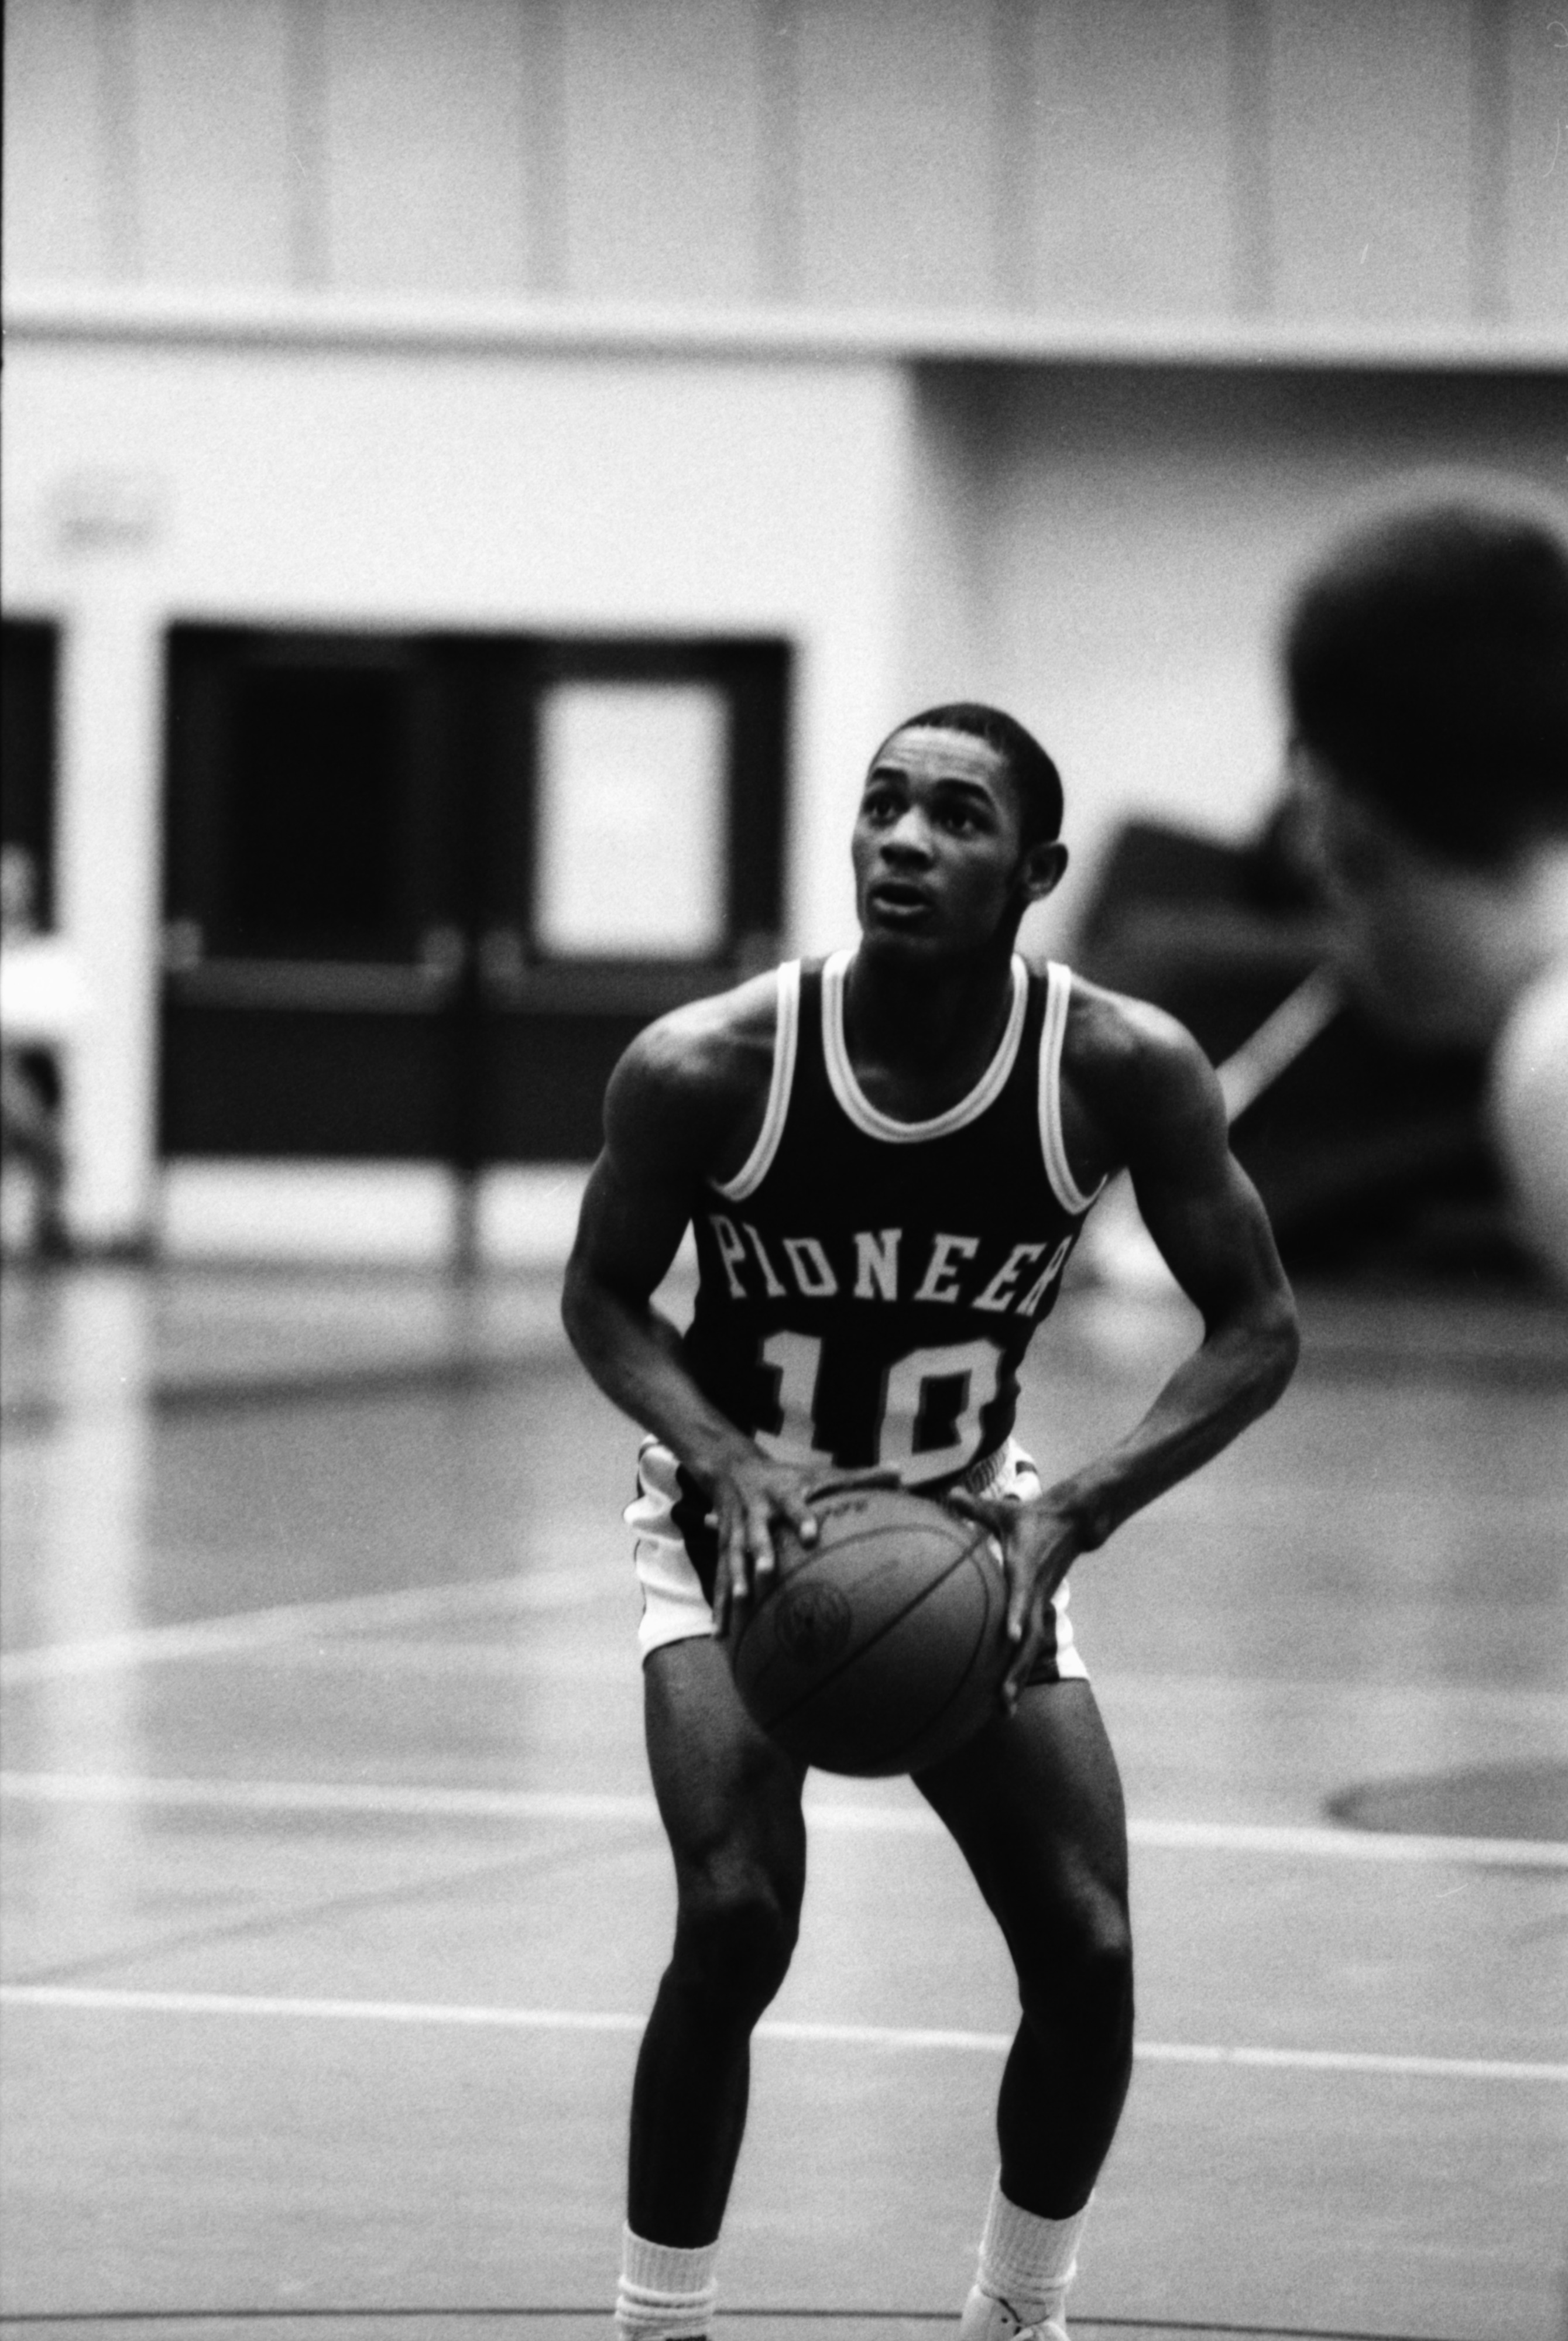 Huron Basketball Player Prepares to Shoot in Playoff Game Against Pioneer, March 1986 image